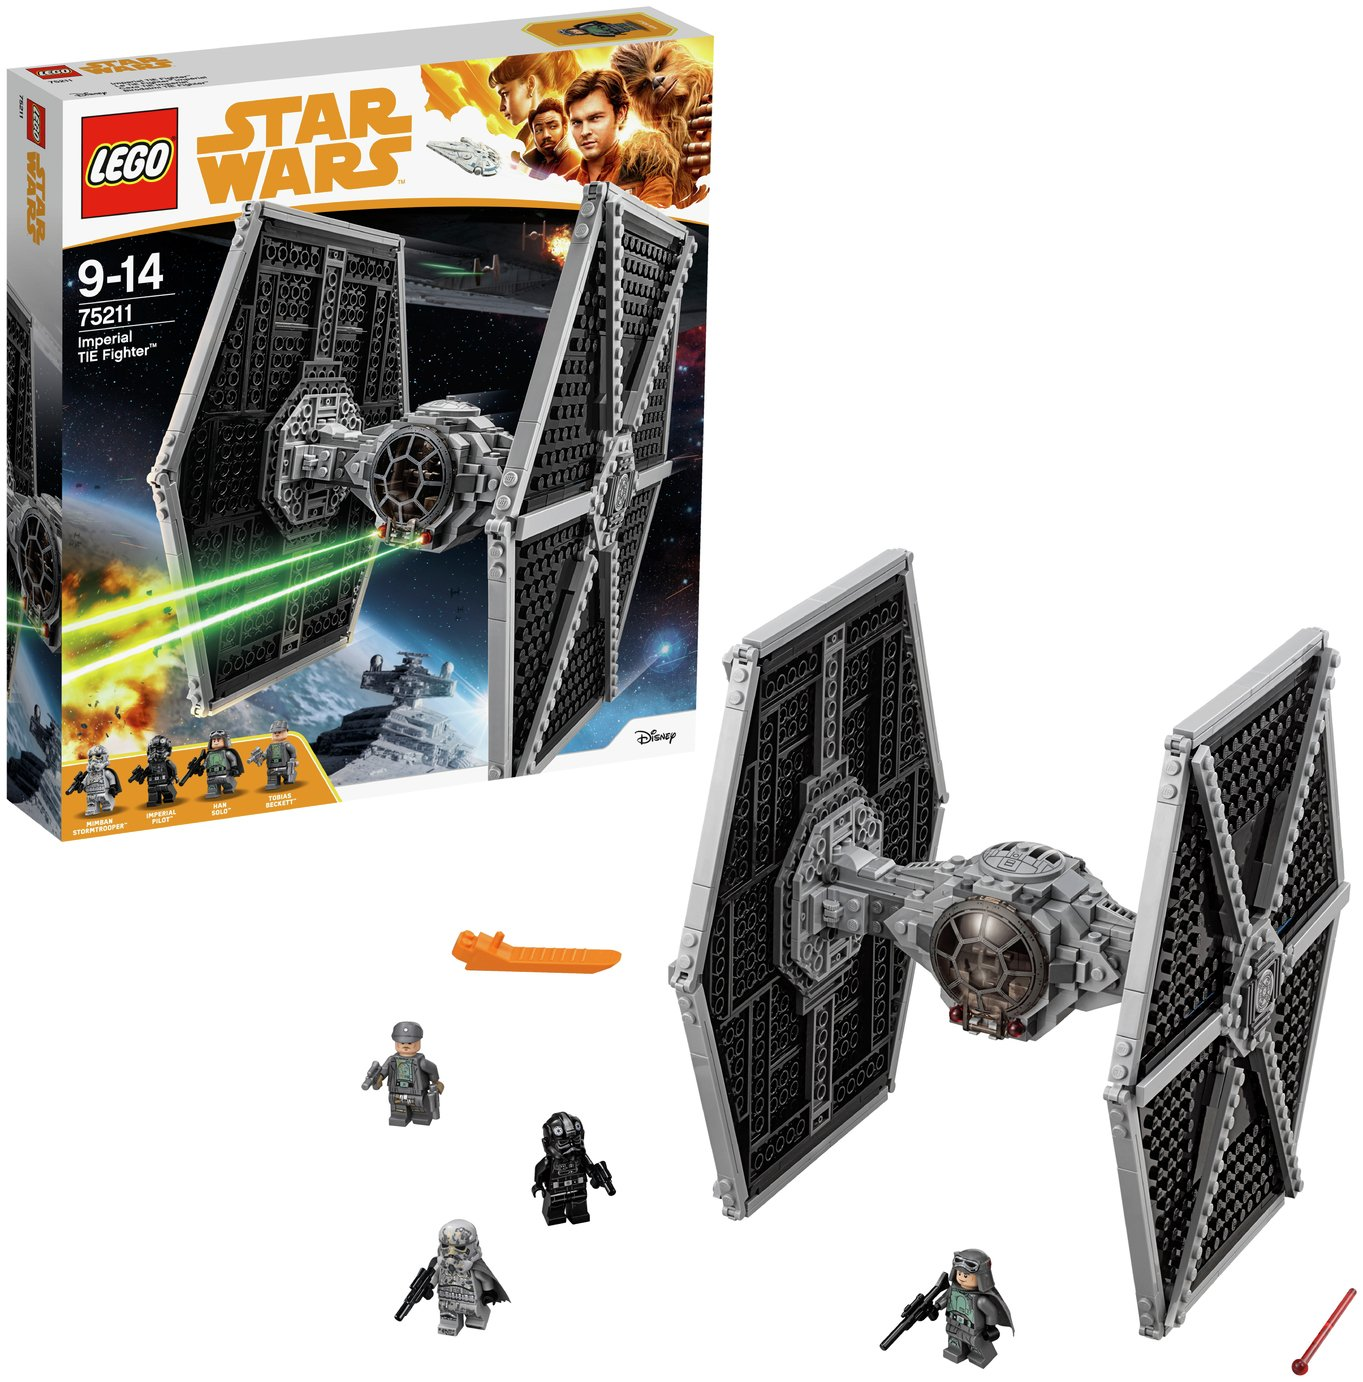 Image of LEGO Star Wars Imperial Tie Fighter - 75211